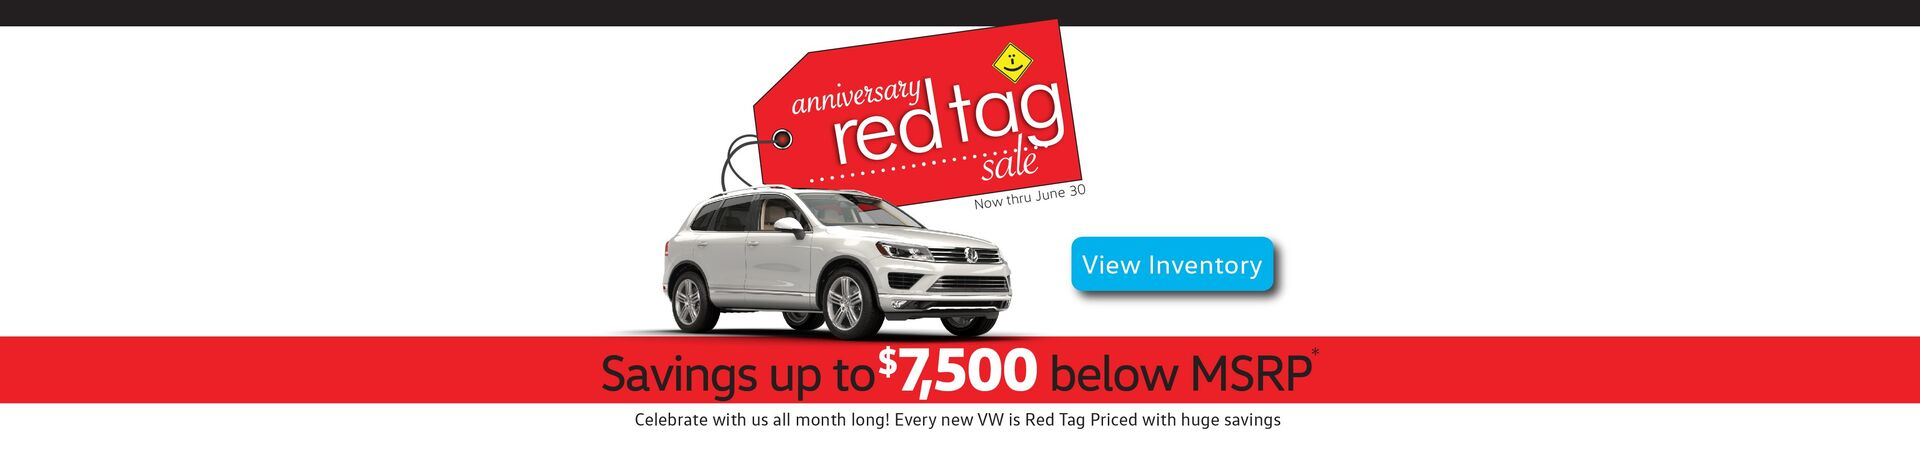 Capo VW Anniversary Red Tag Sale - savings up to $7,500 below MSRP!